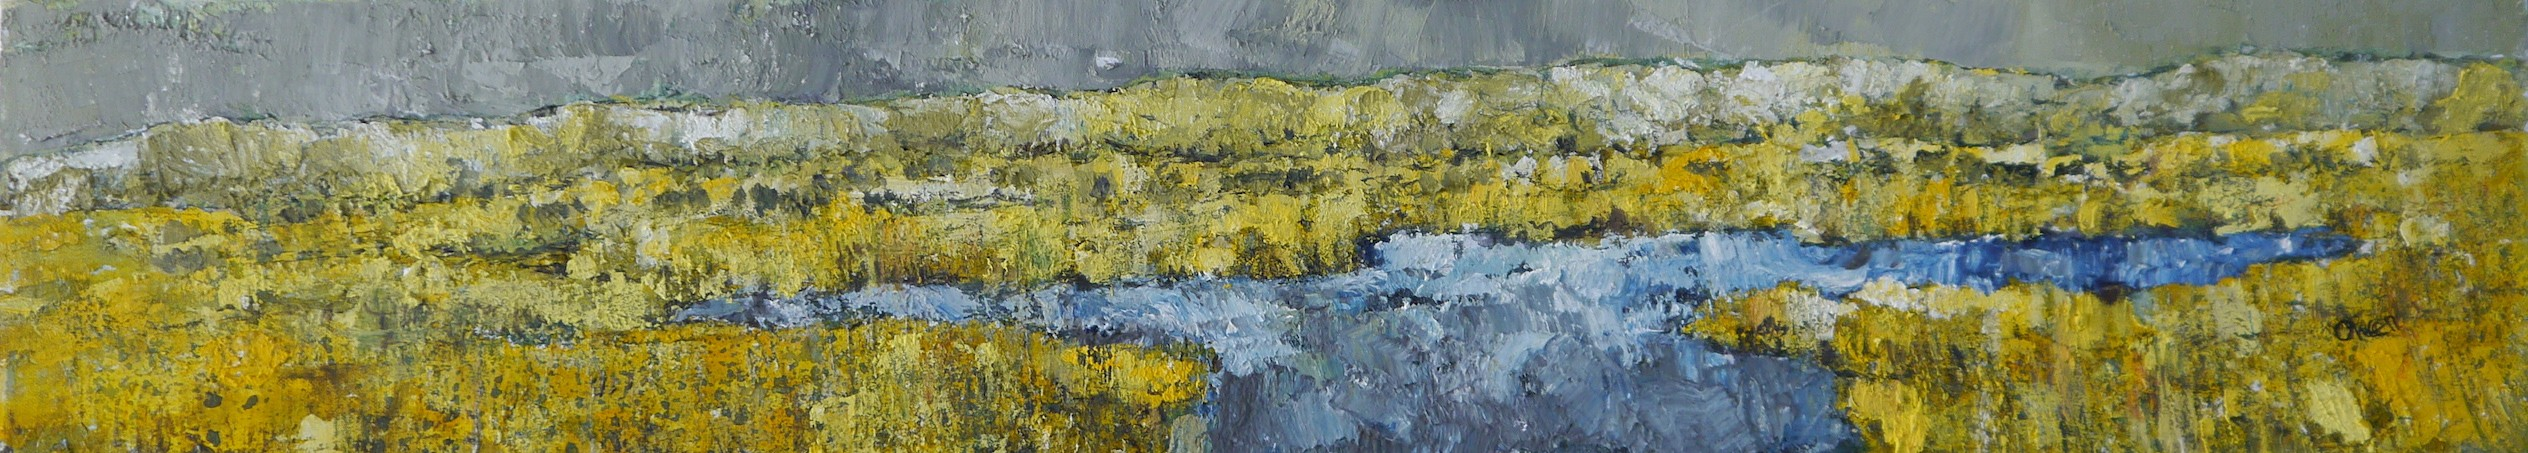 Cors Caron   90x20 cm    Acrylic on Canvas   UNFRAMED